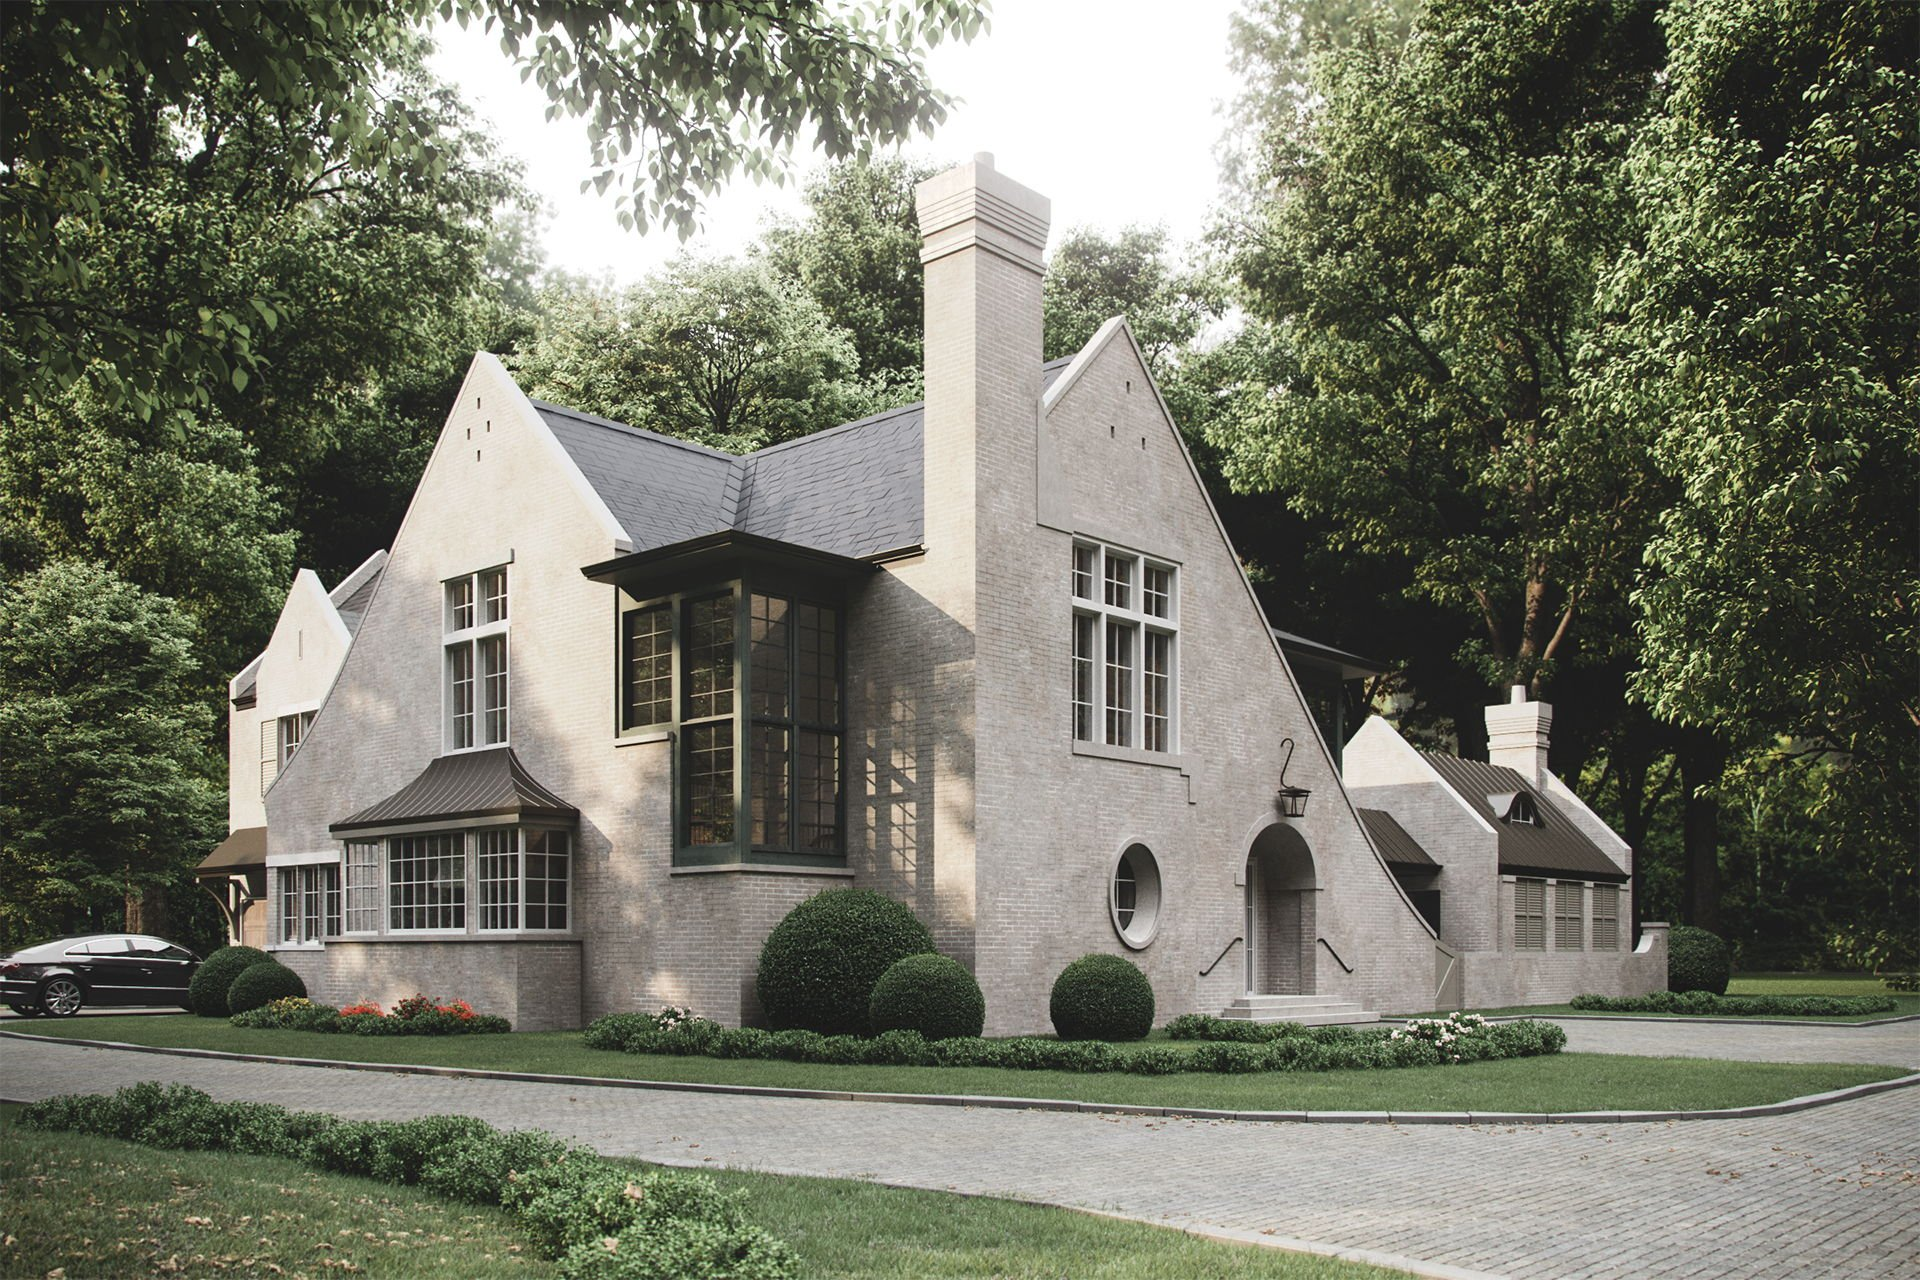 Architectural 3D Visualization of a Countryside Residence